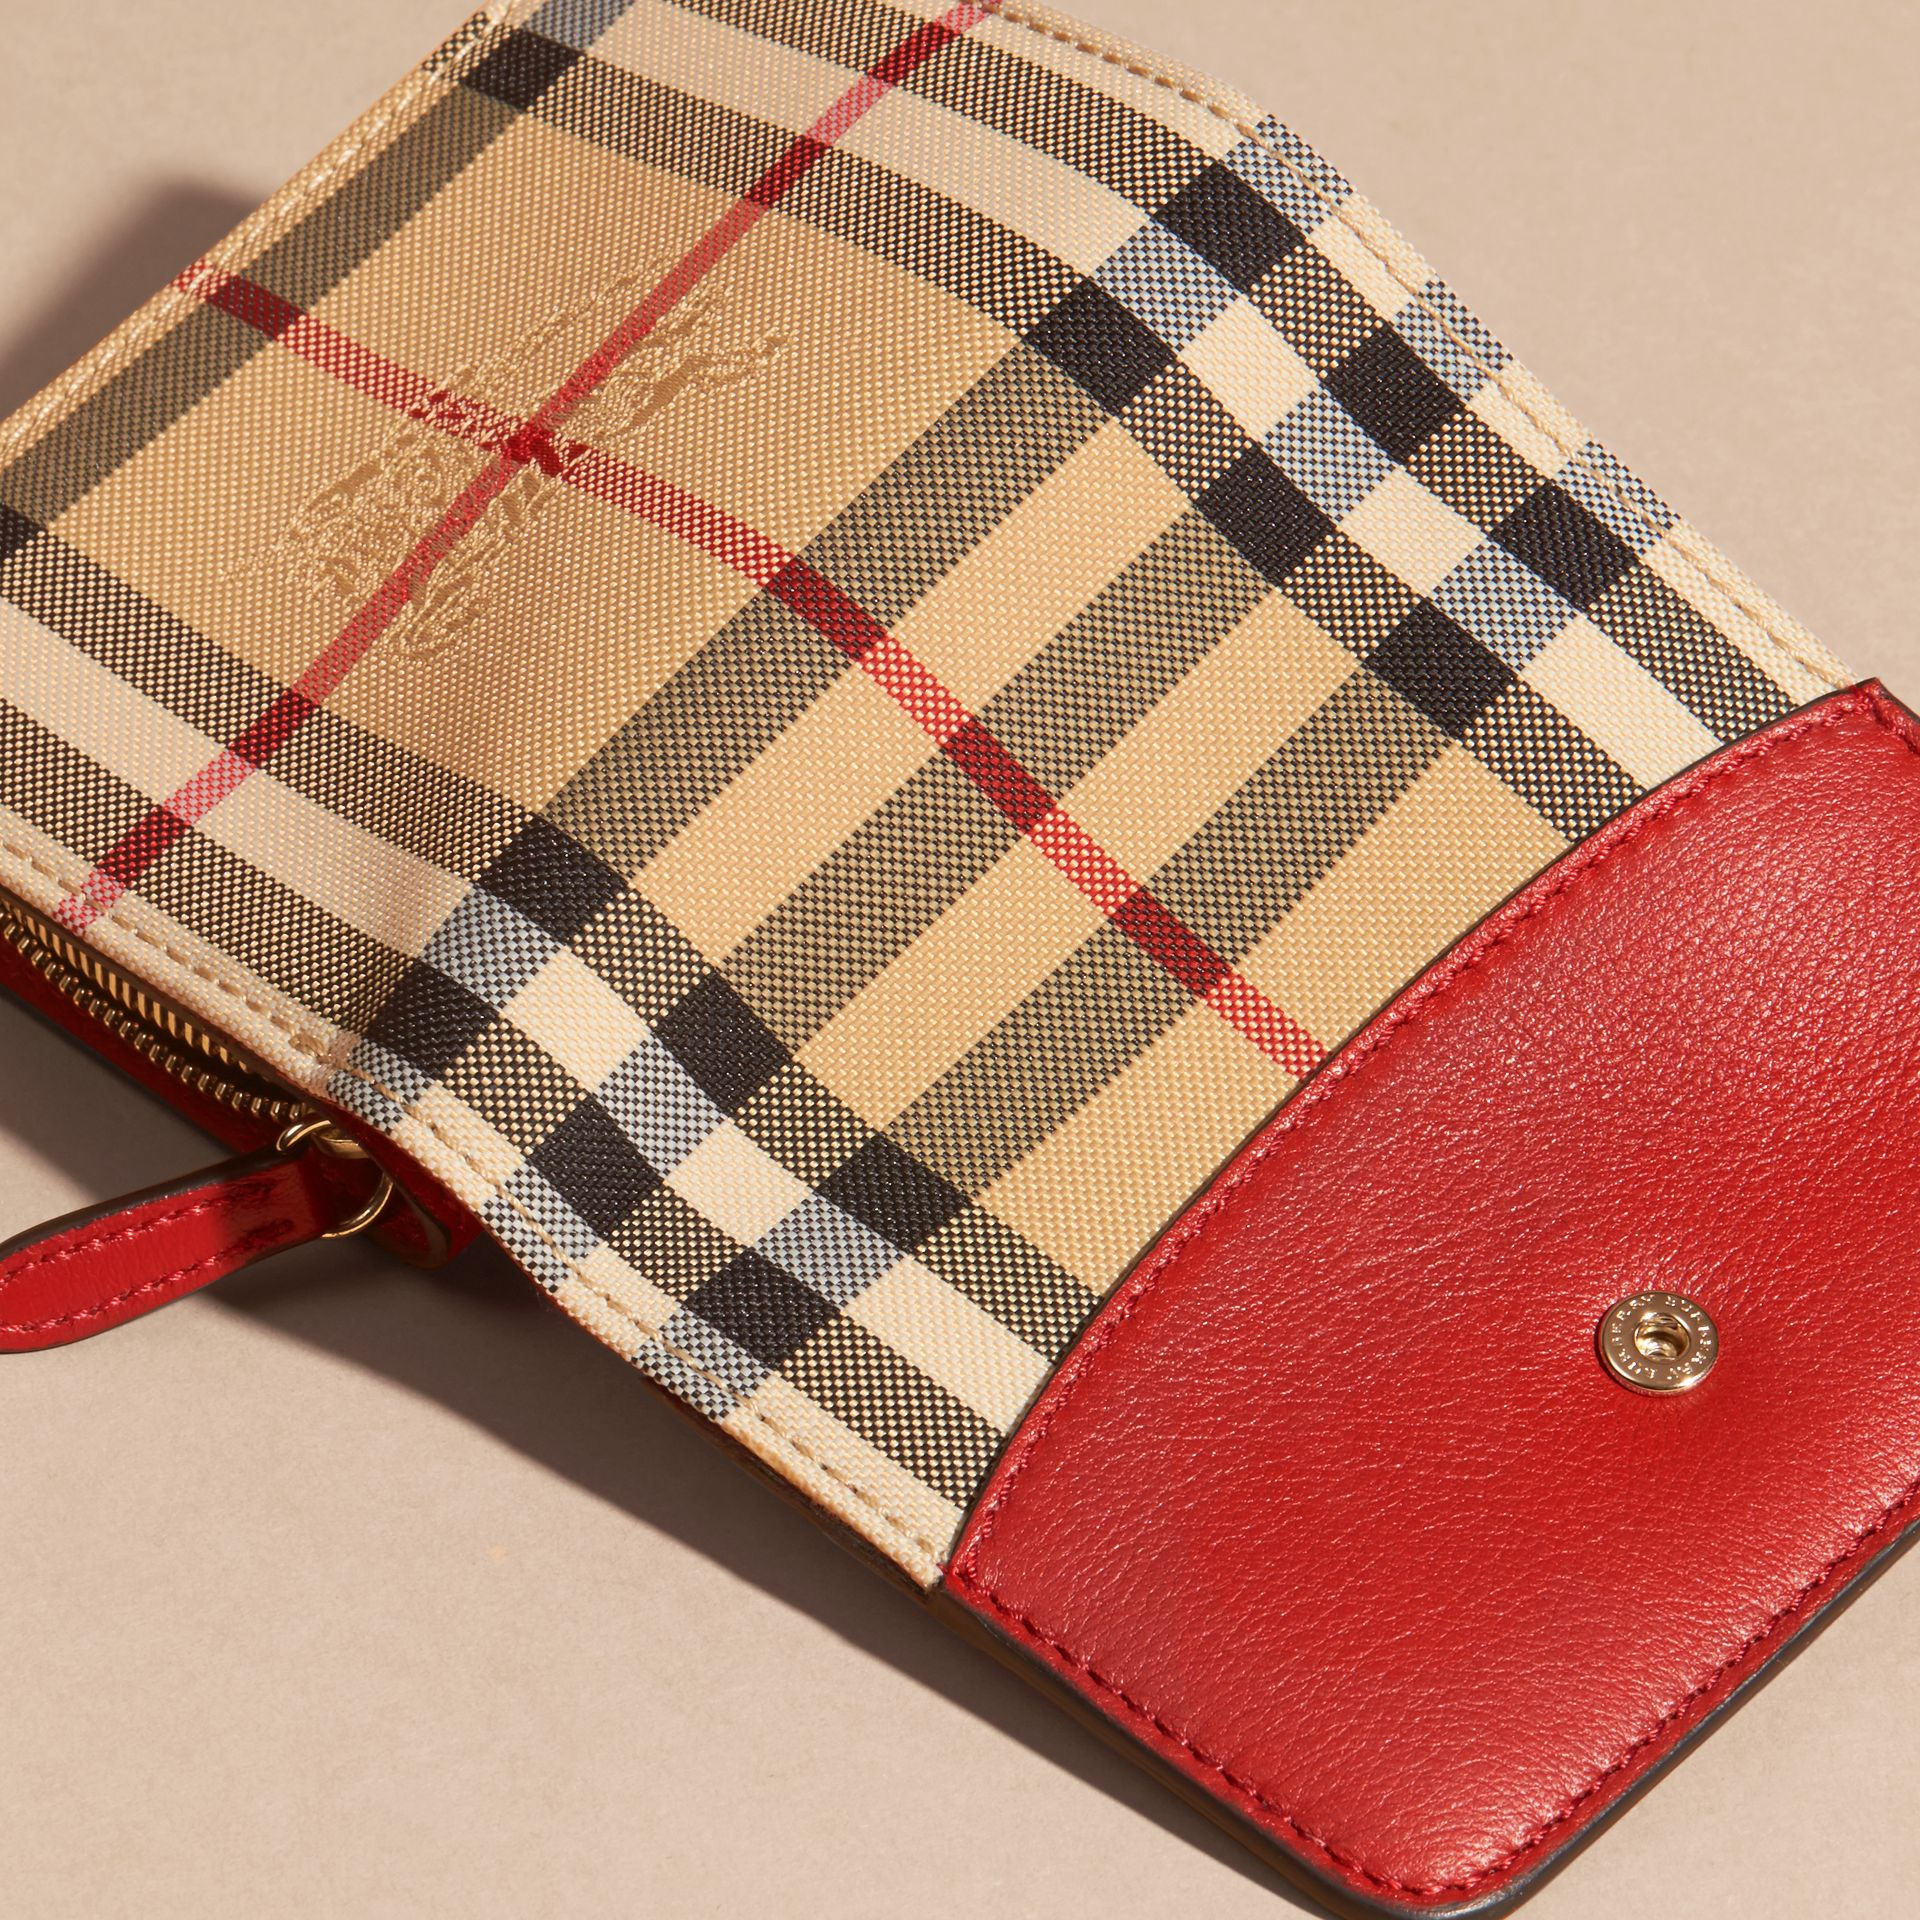 Parade red Horseferry Check and Leather Wallet Parade Red - gallery image 2